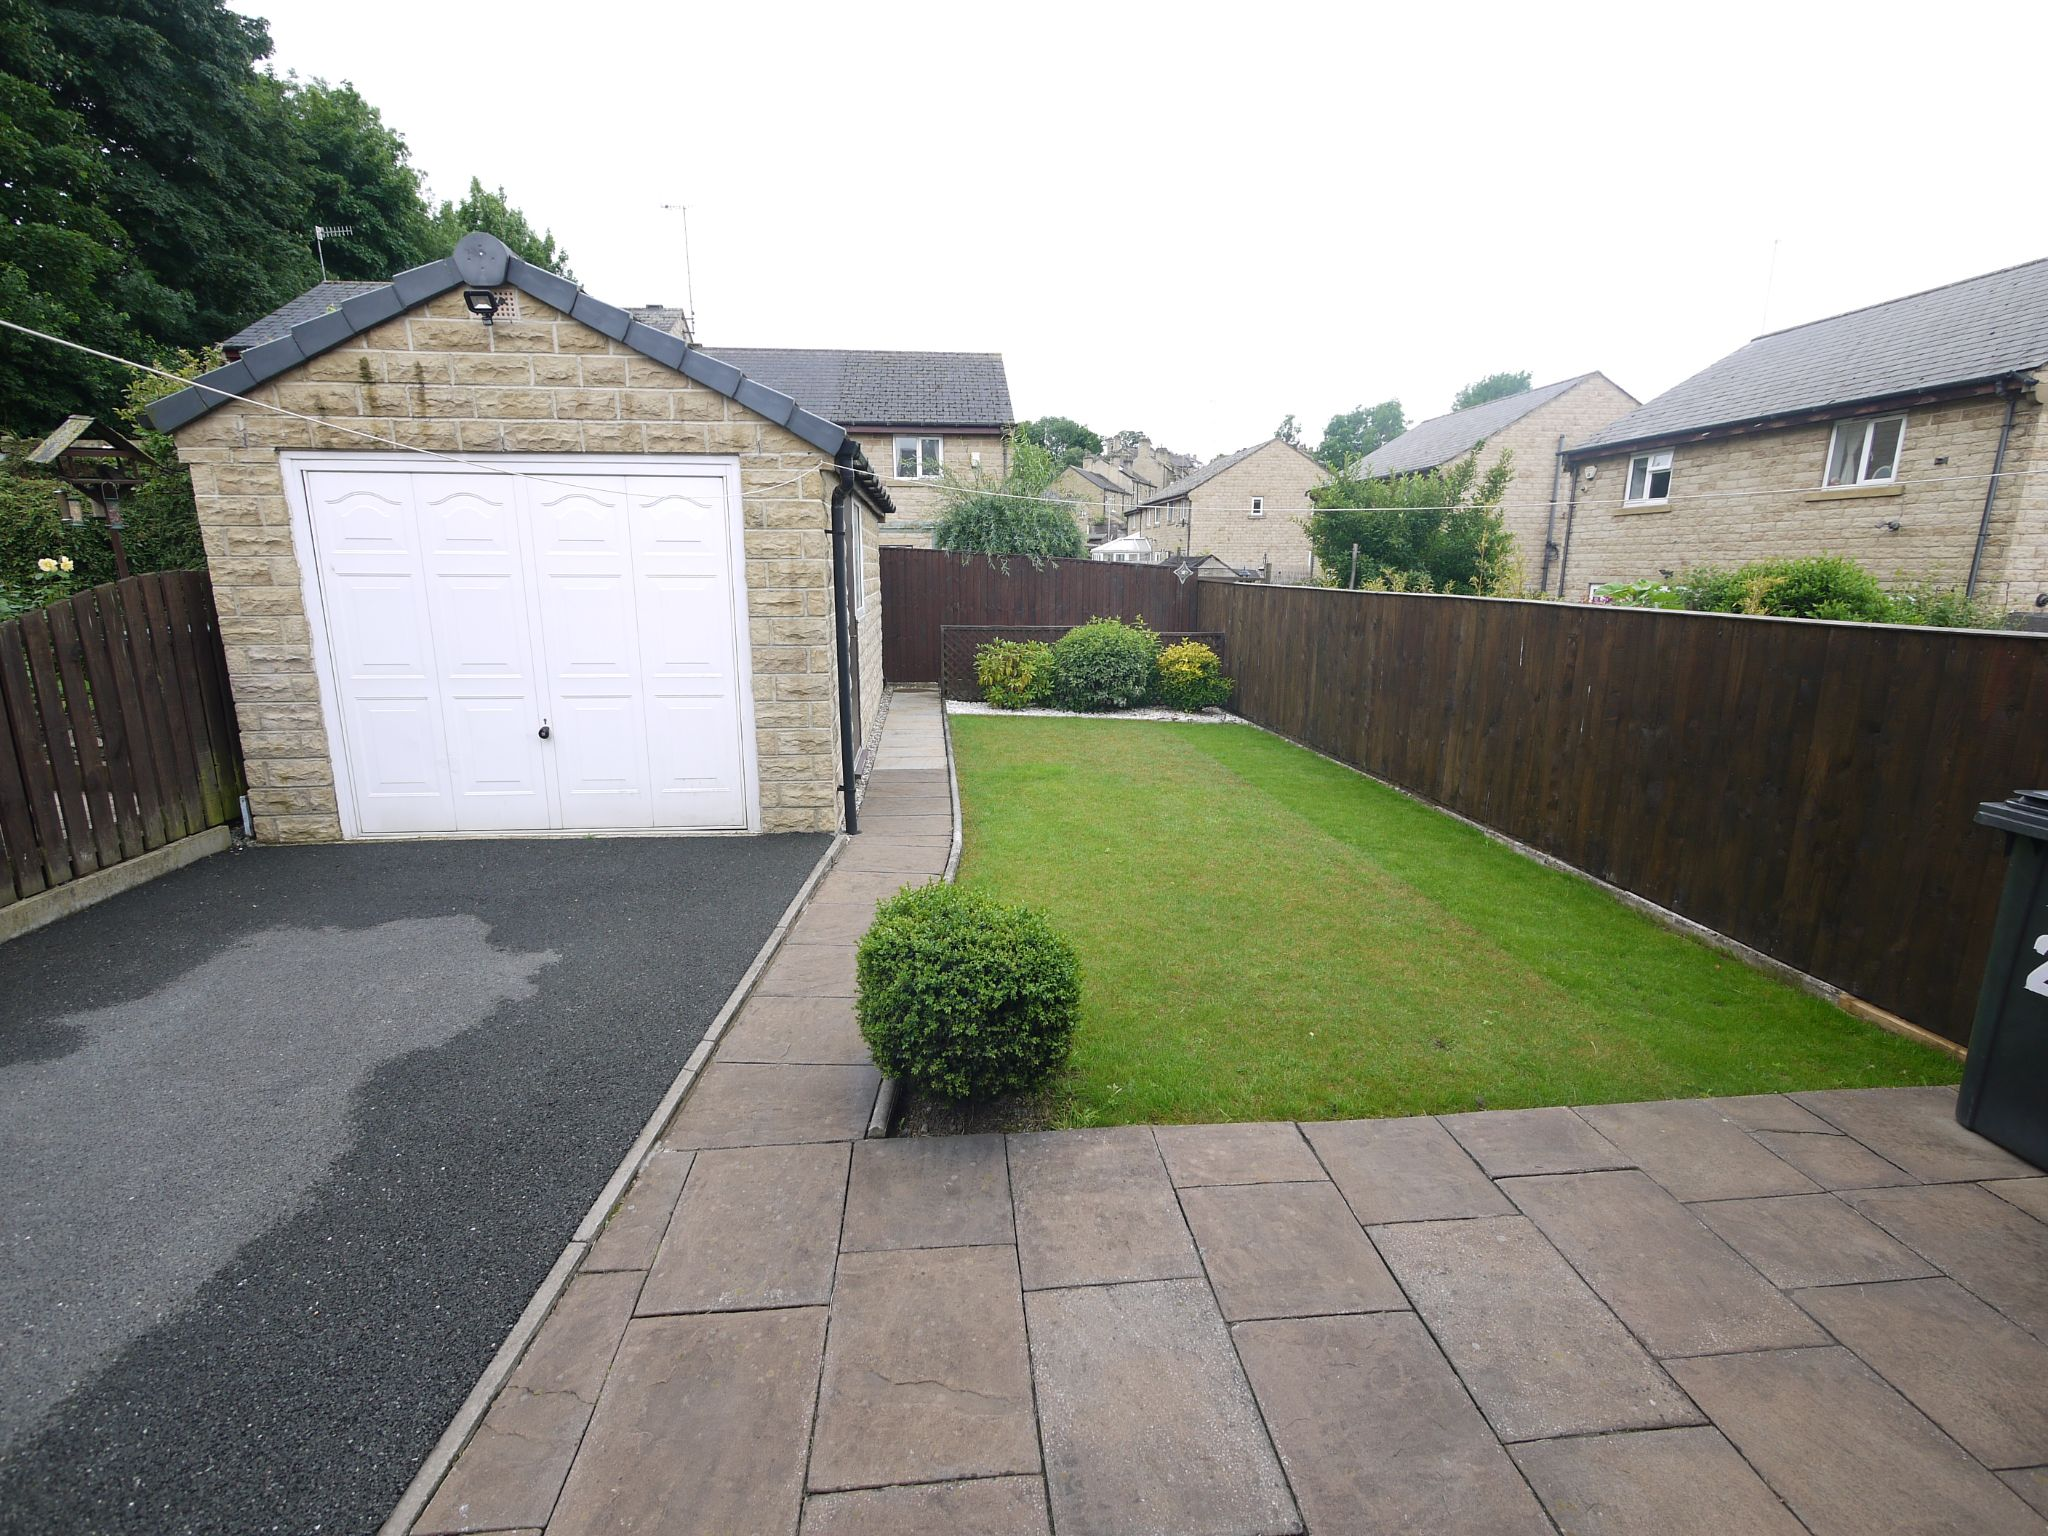 3 bedroom semi-detached house SSTC in Brighouse - Garden.